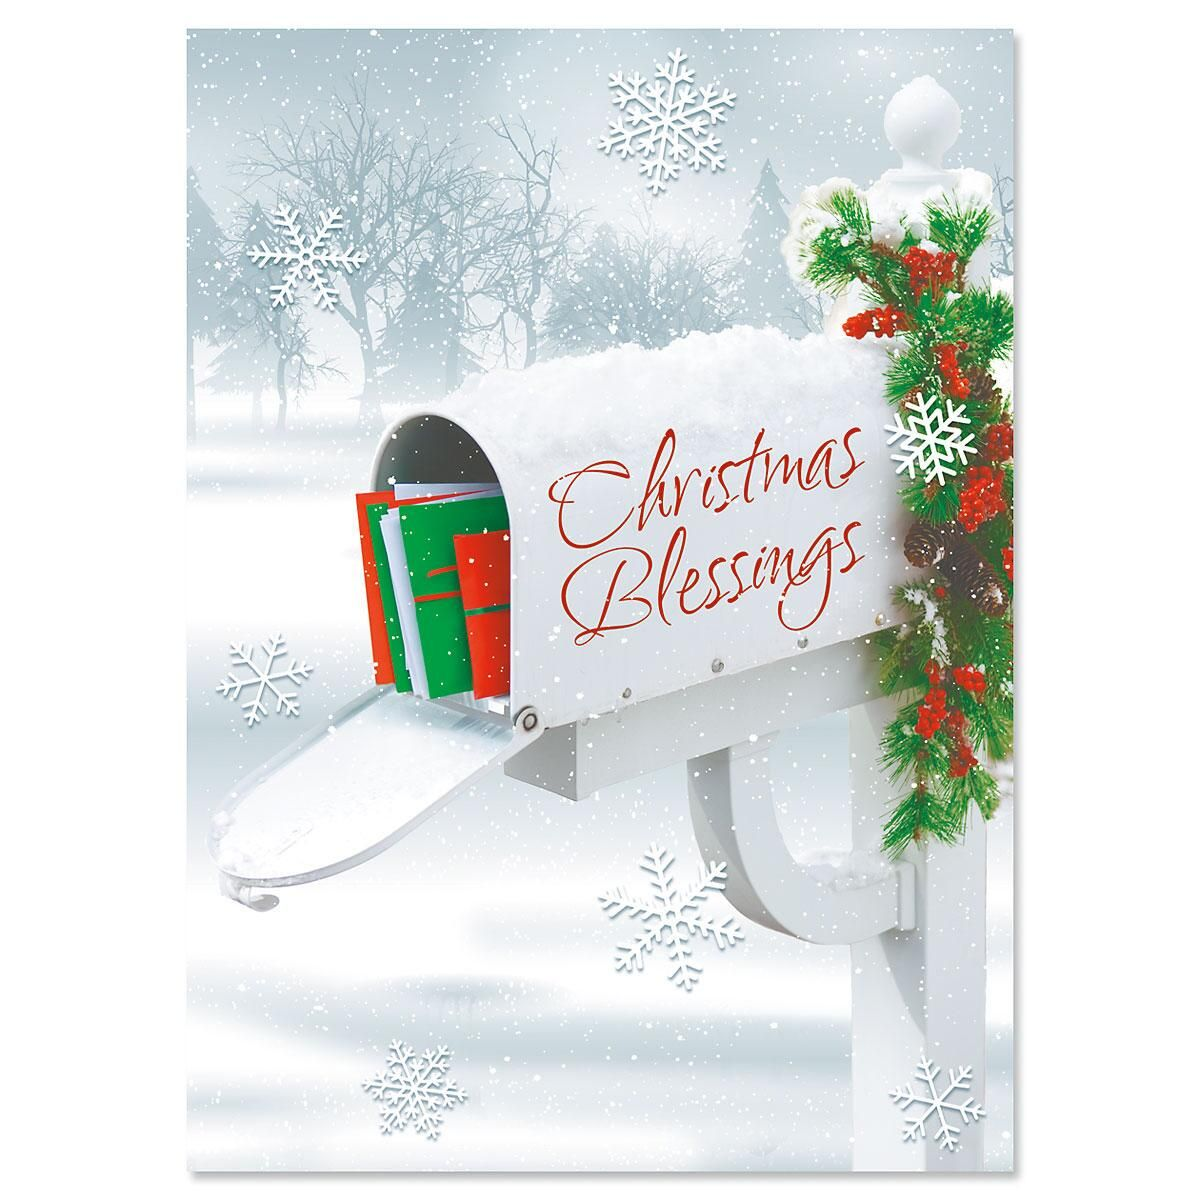 Holiday Delivery Personalized Christmas Cards - Set of 72